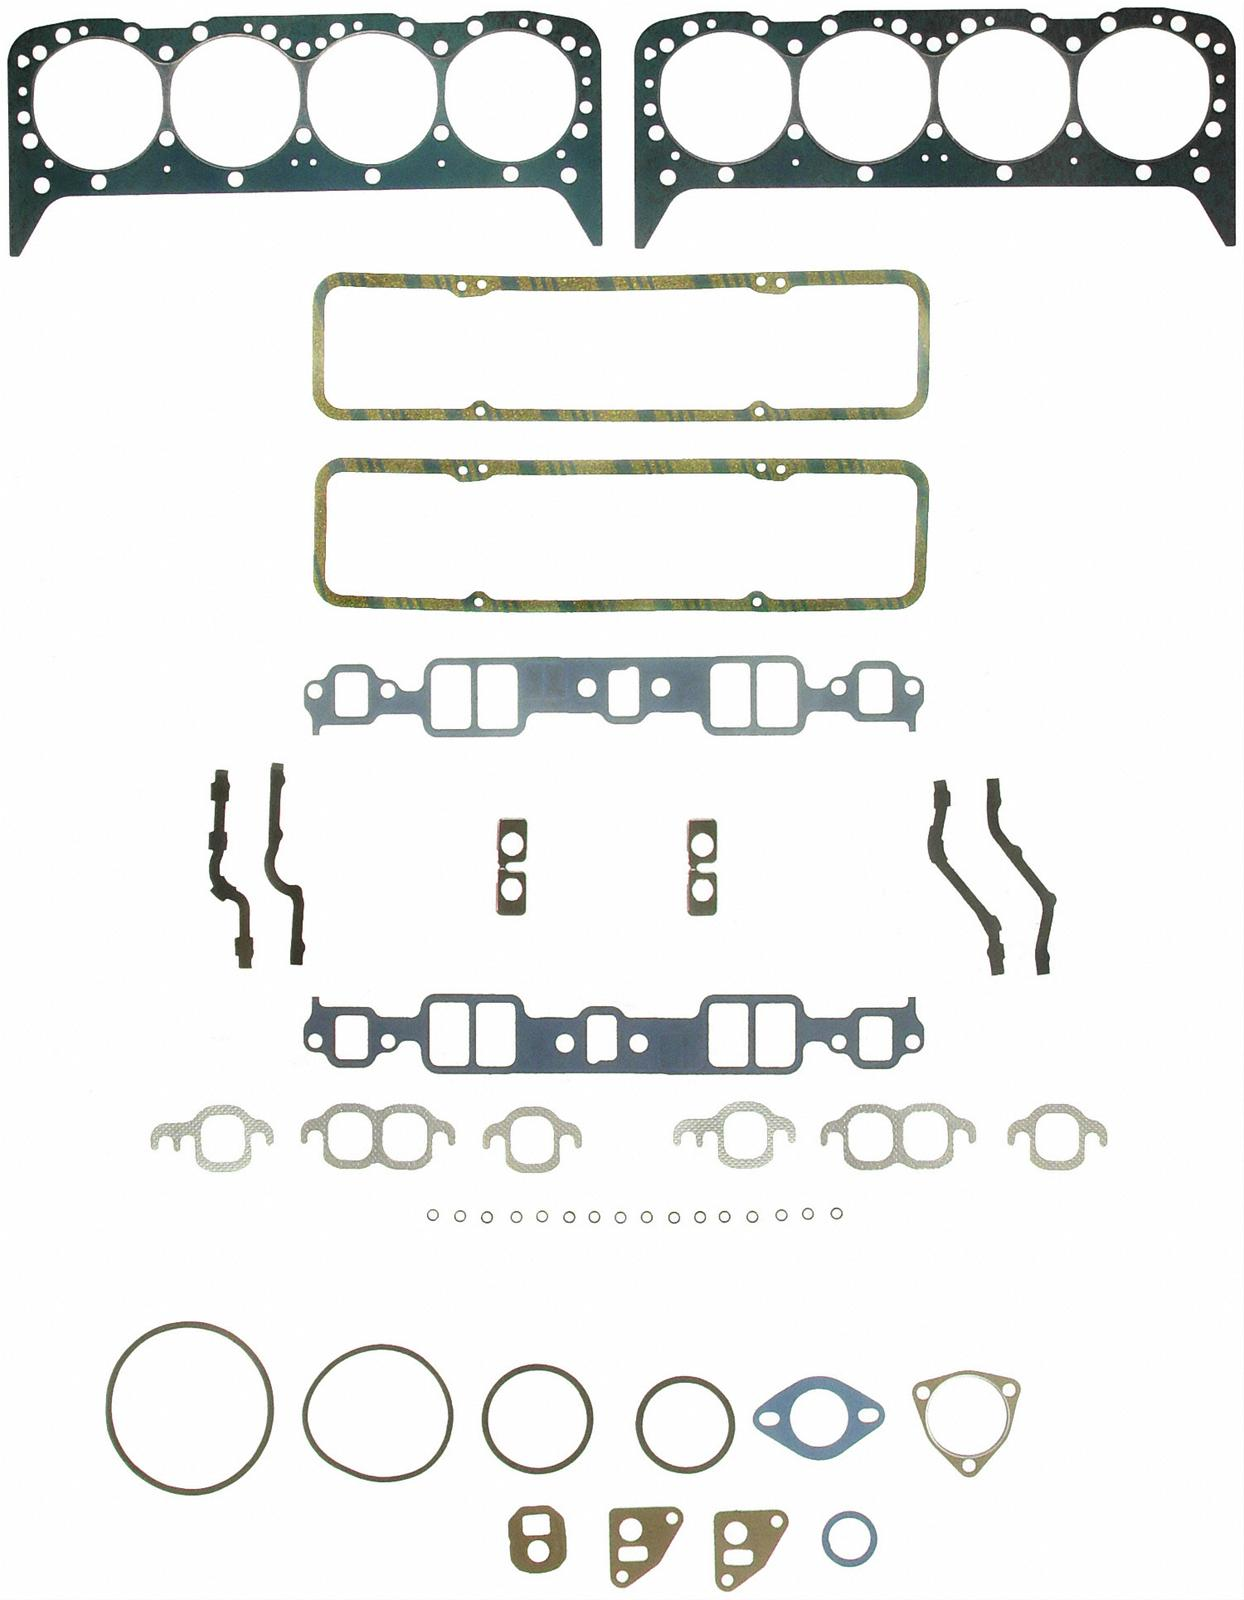 Fel Pro Head Gasket Sets Sflhs7733pt2 Free Shipping On Orders Over Mack Truck Engine Diagram Cylinder 99 At Summit Racing